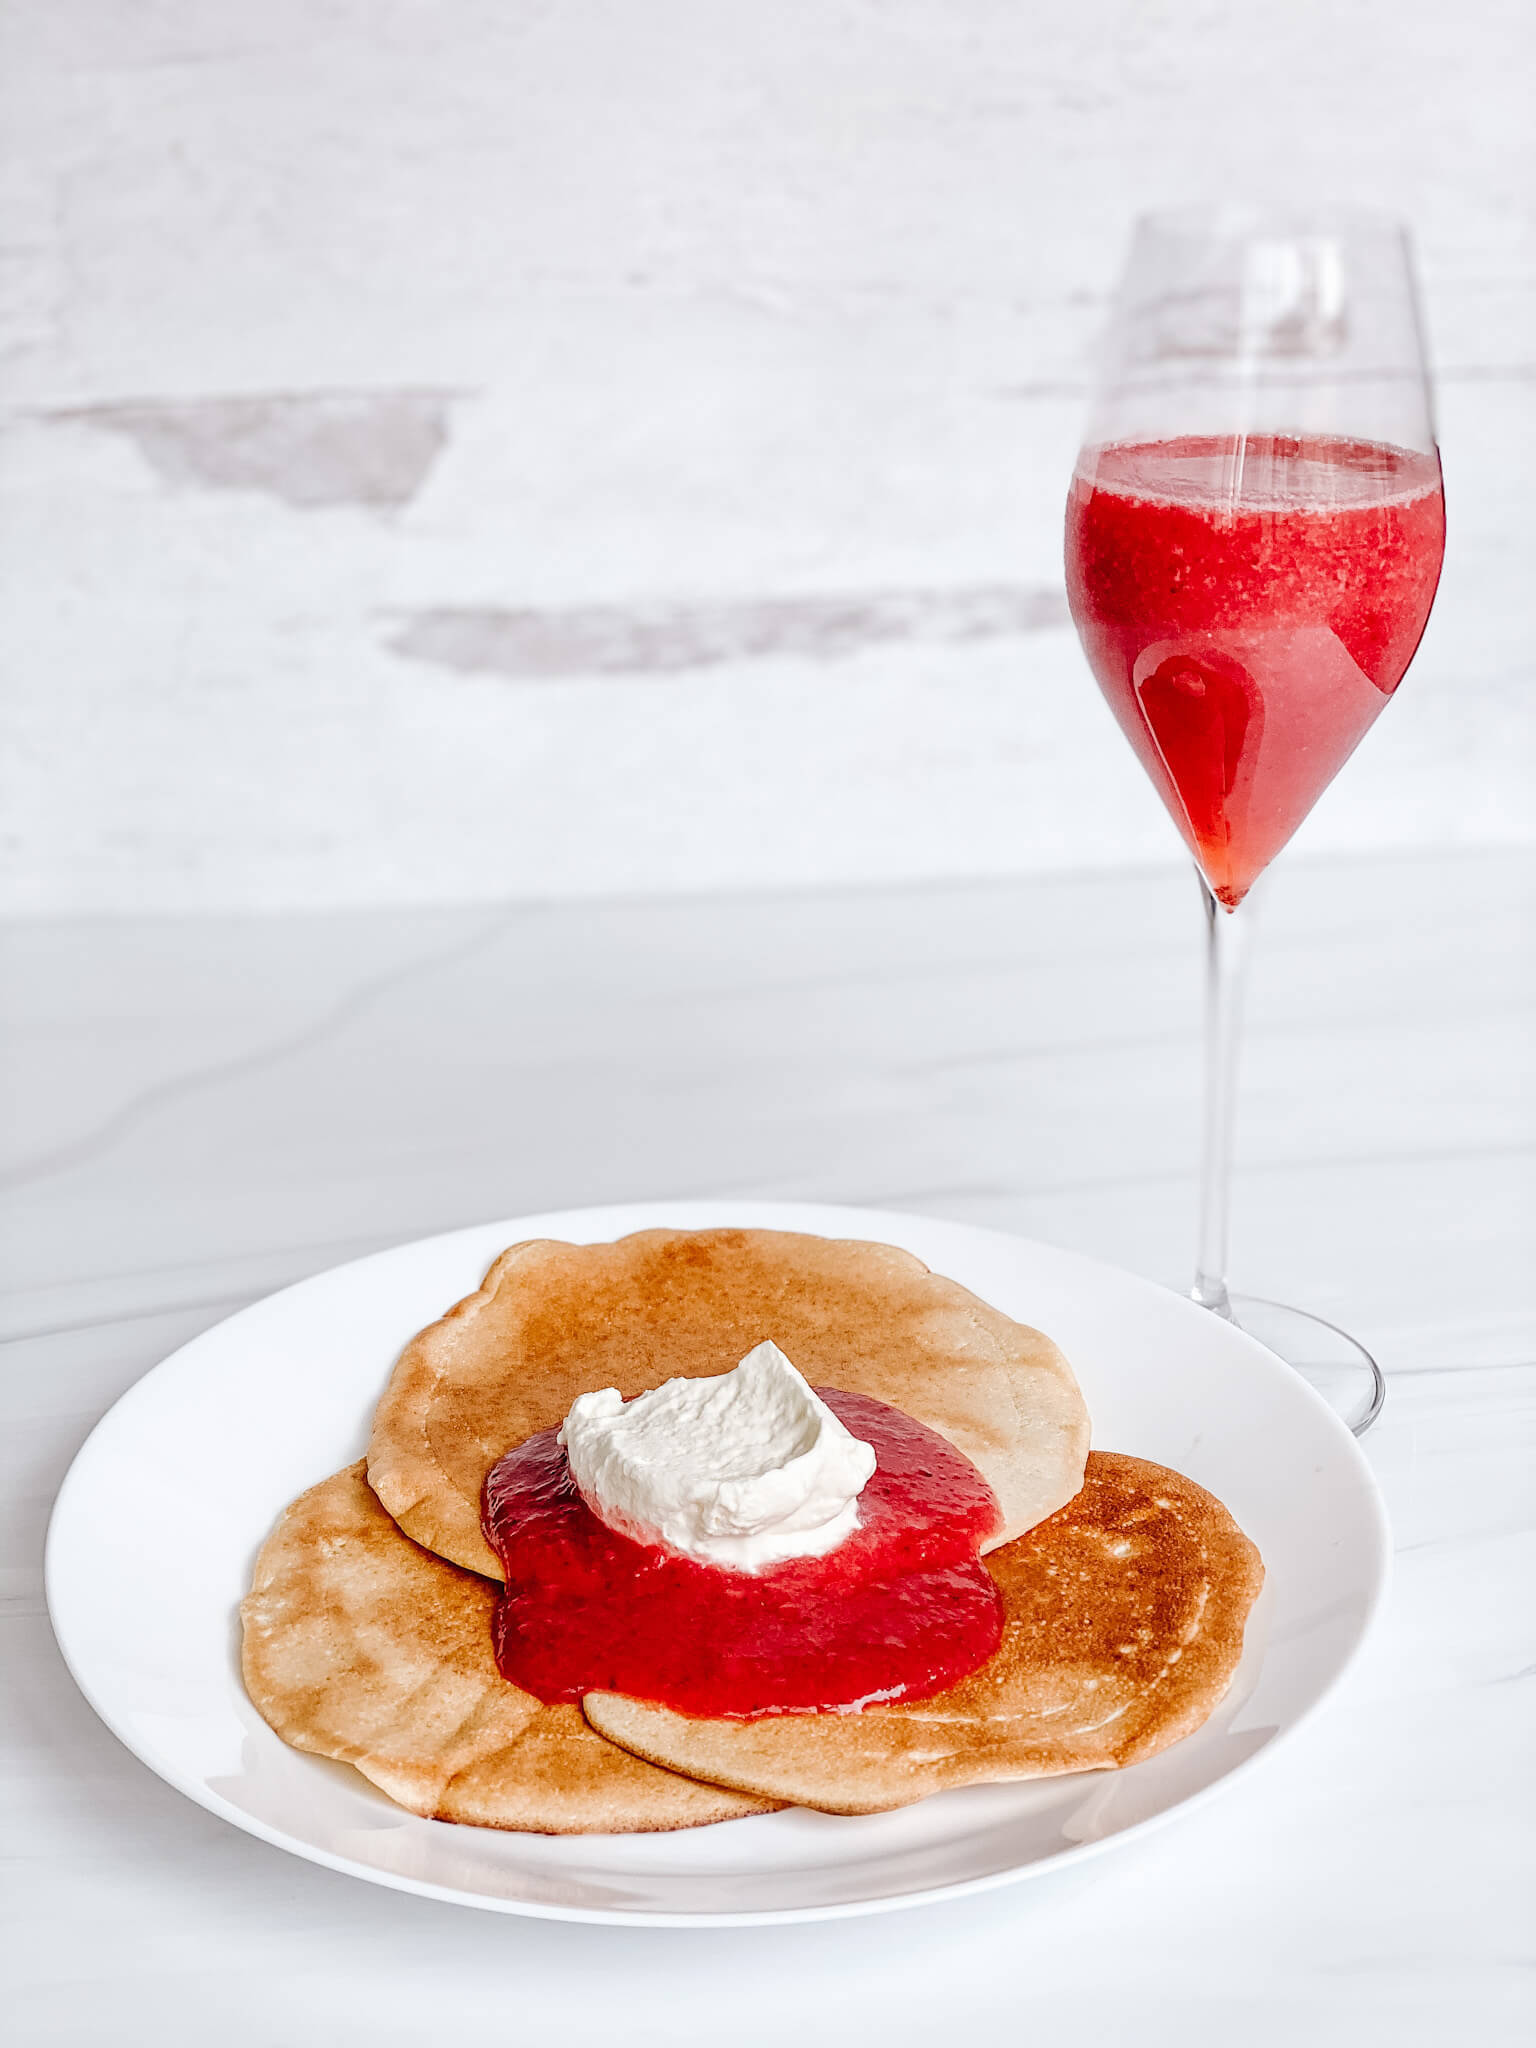 The Best Mother's Day Breakfast Menu with Perfect Bubbly Pairings including 2 Rosé Champagne Cocktails